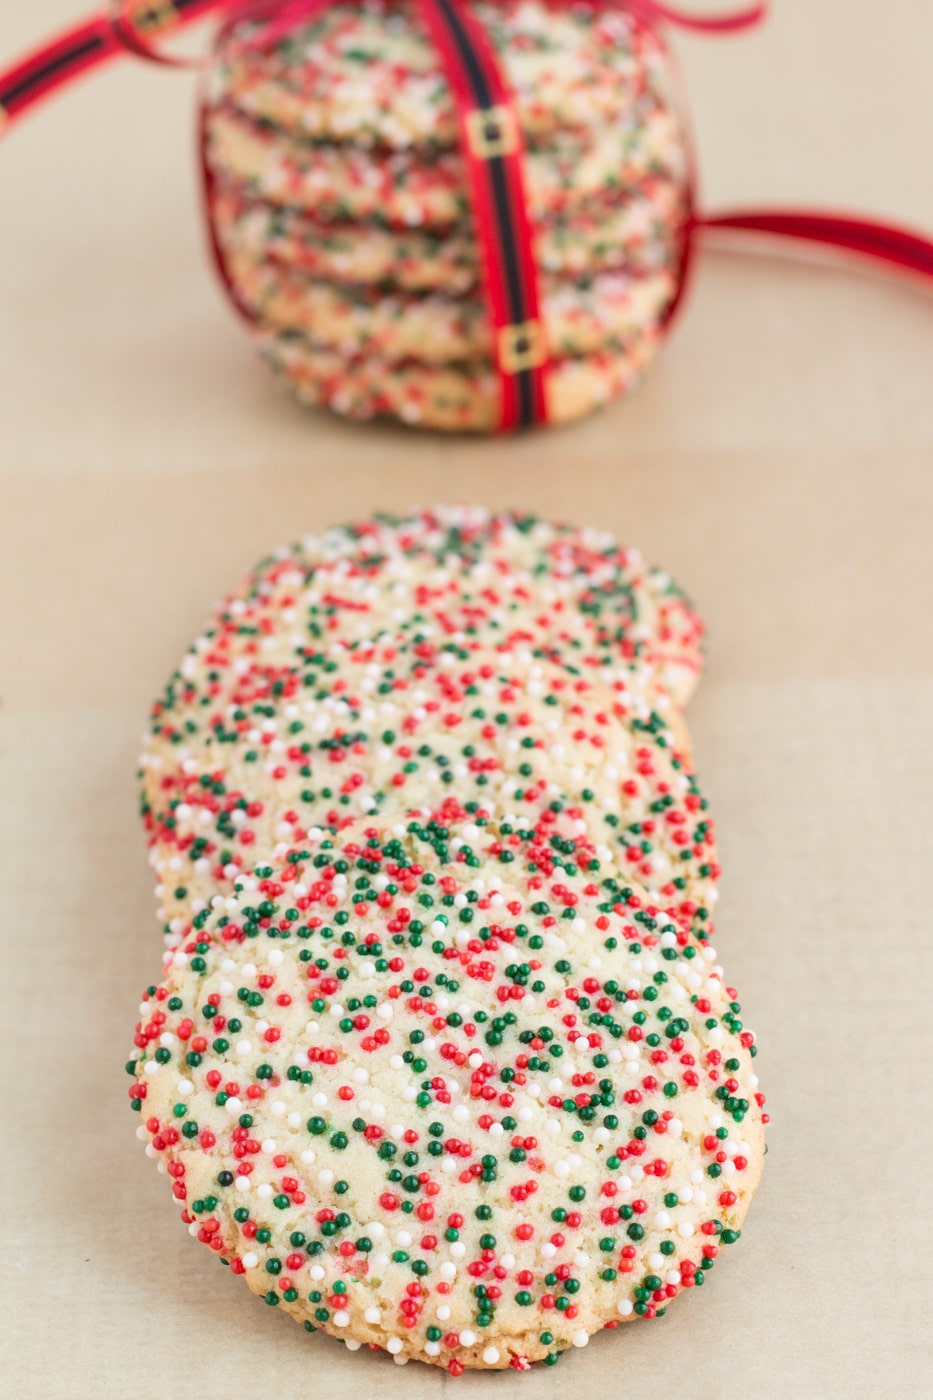 Cookies coated in Christmas Sprinkles